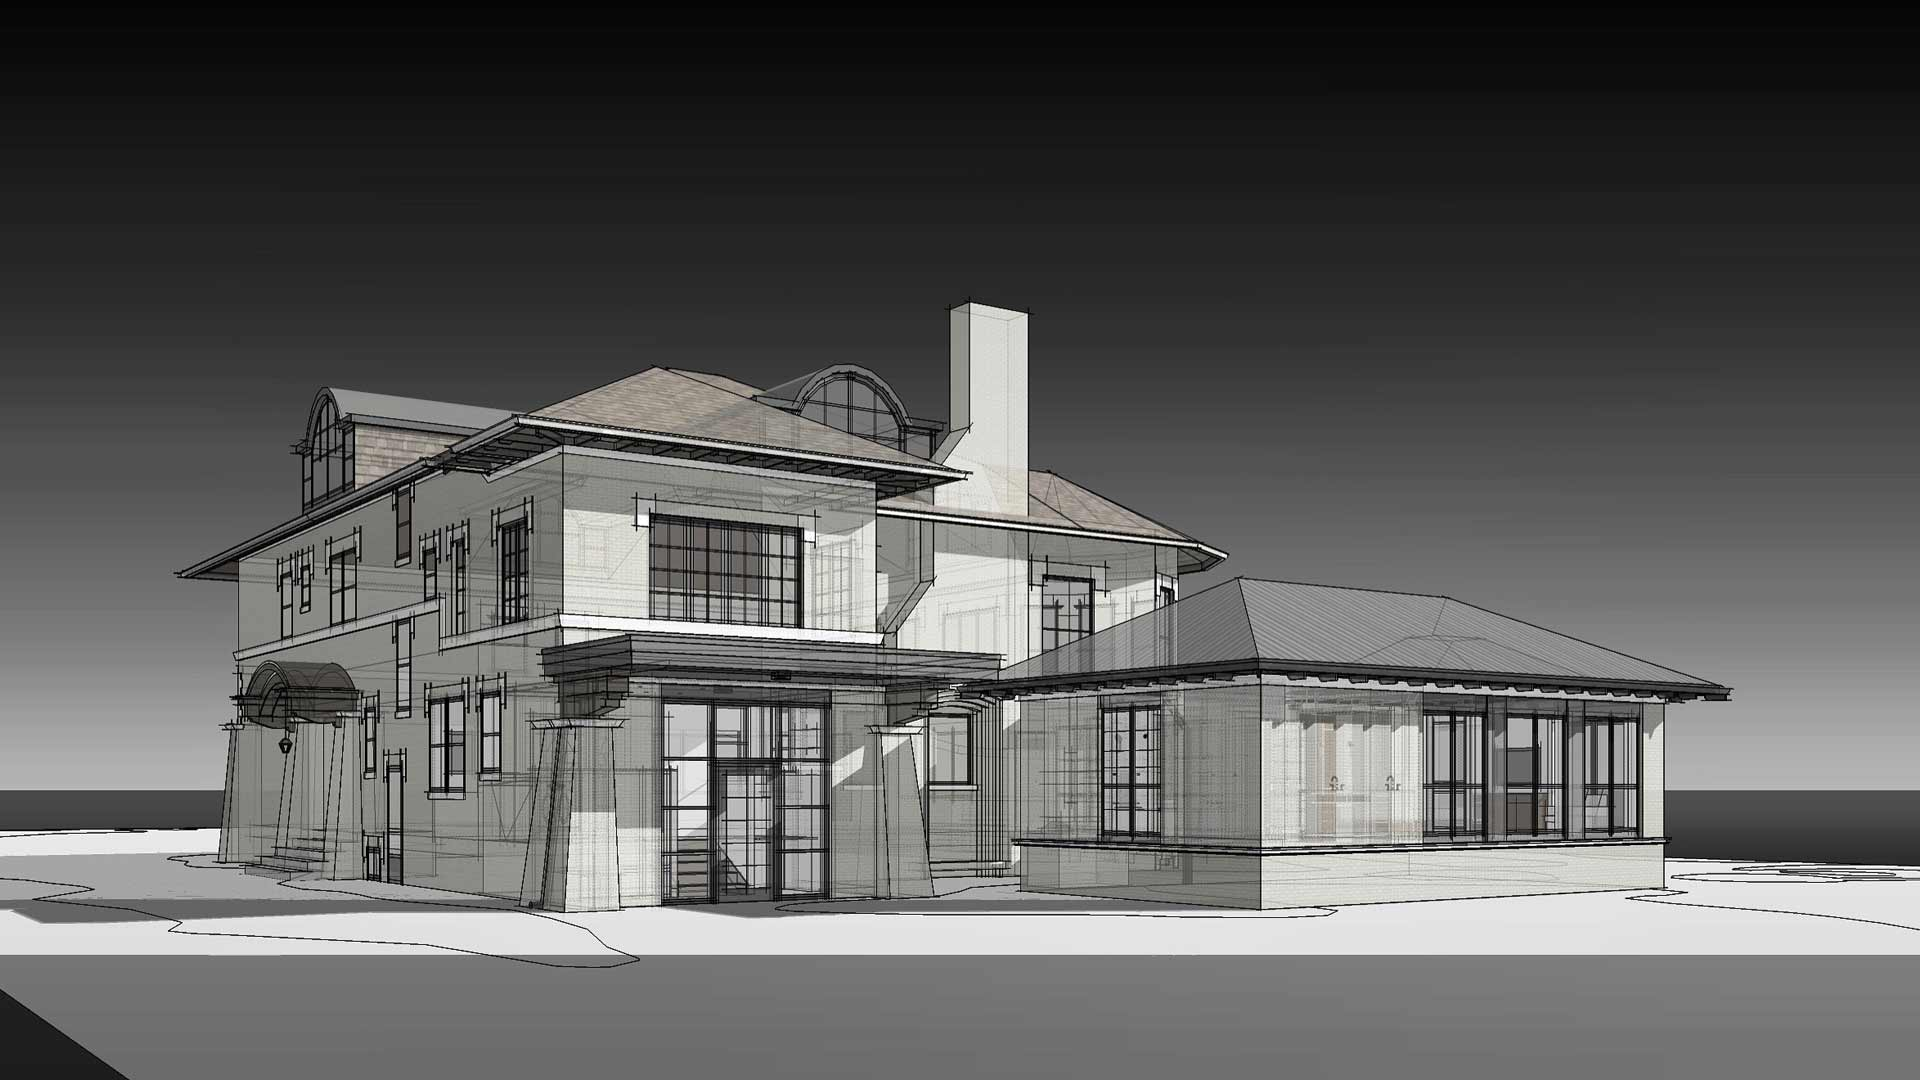 Aging-in-Place - Rear Elevation-Rendering - Eclectic Italian Renaissance Addition, Washington Boulevard, Indianapolis